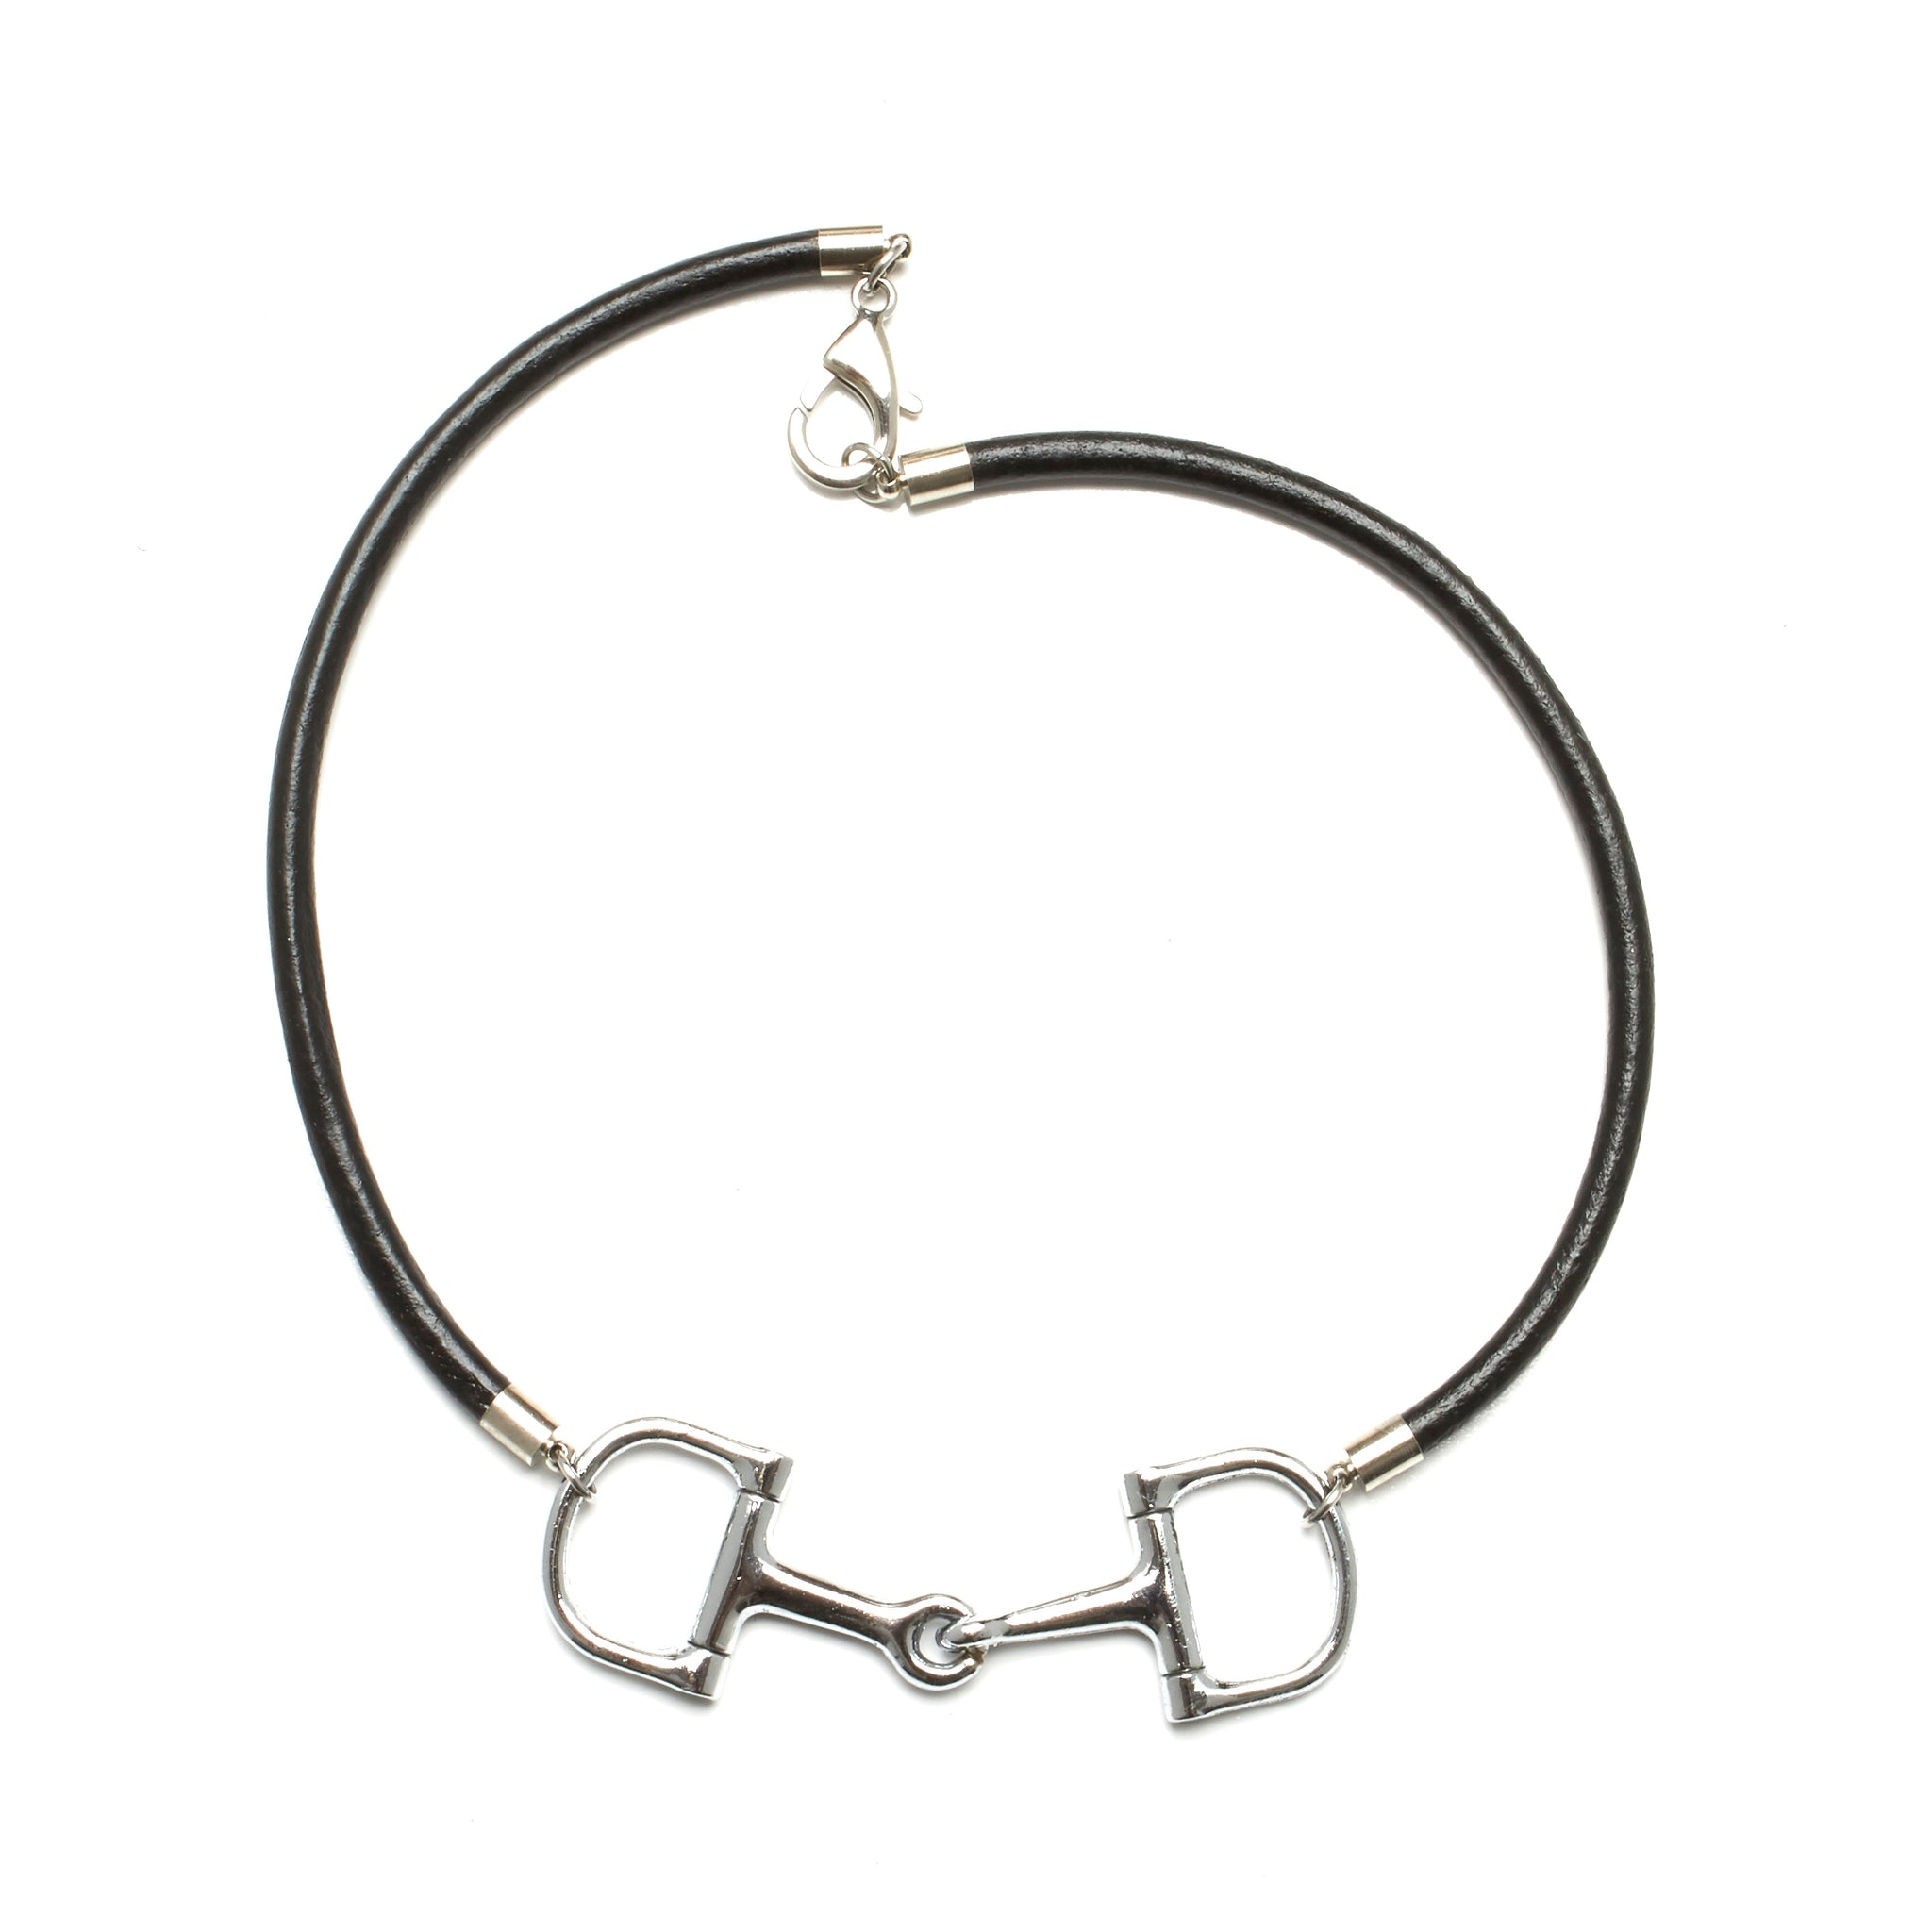 equestrian horse bit choker necklace by nyet jewelry.